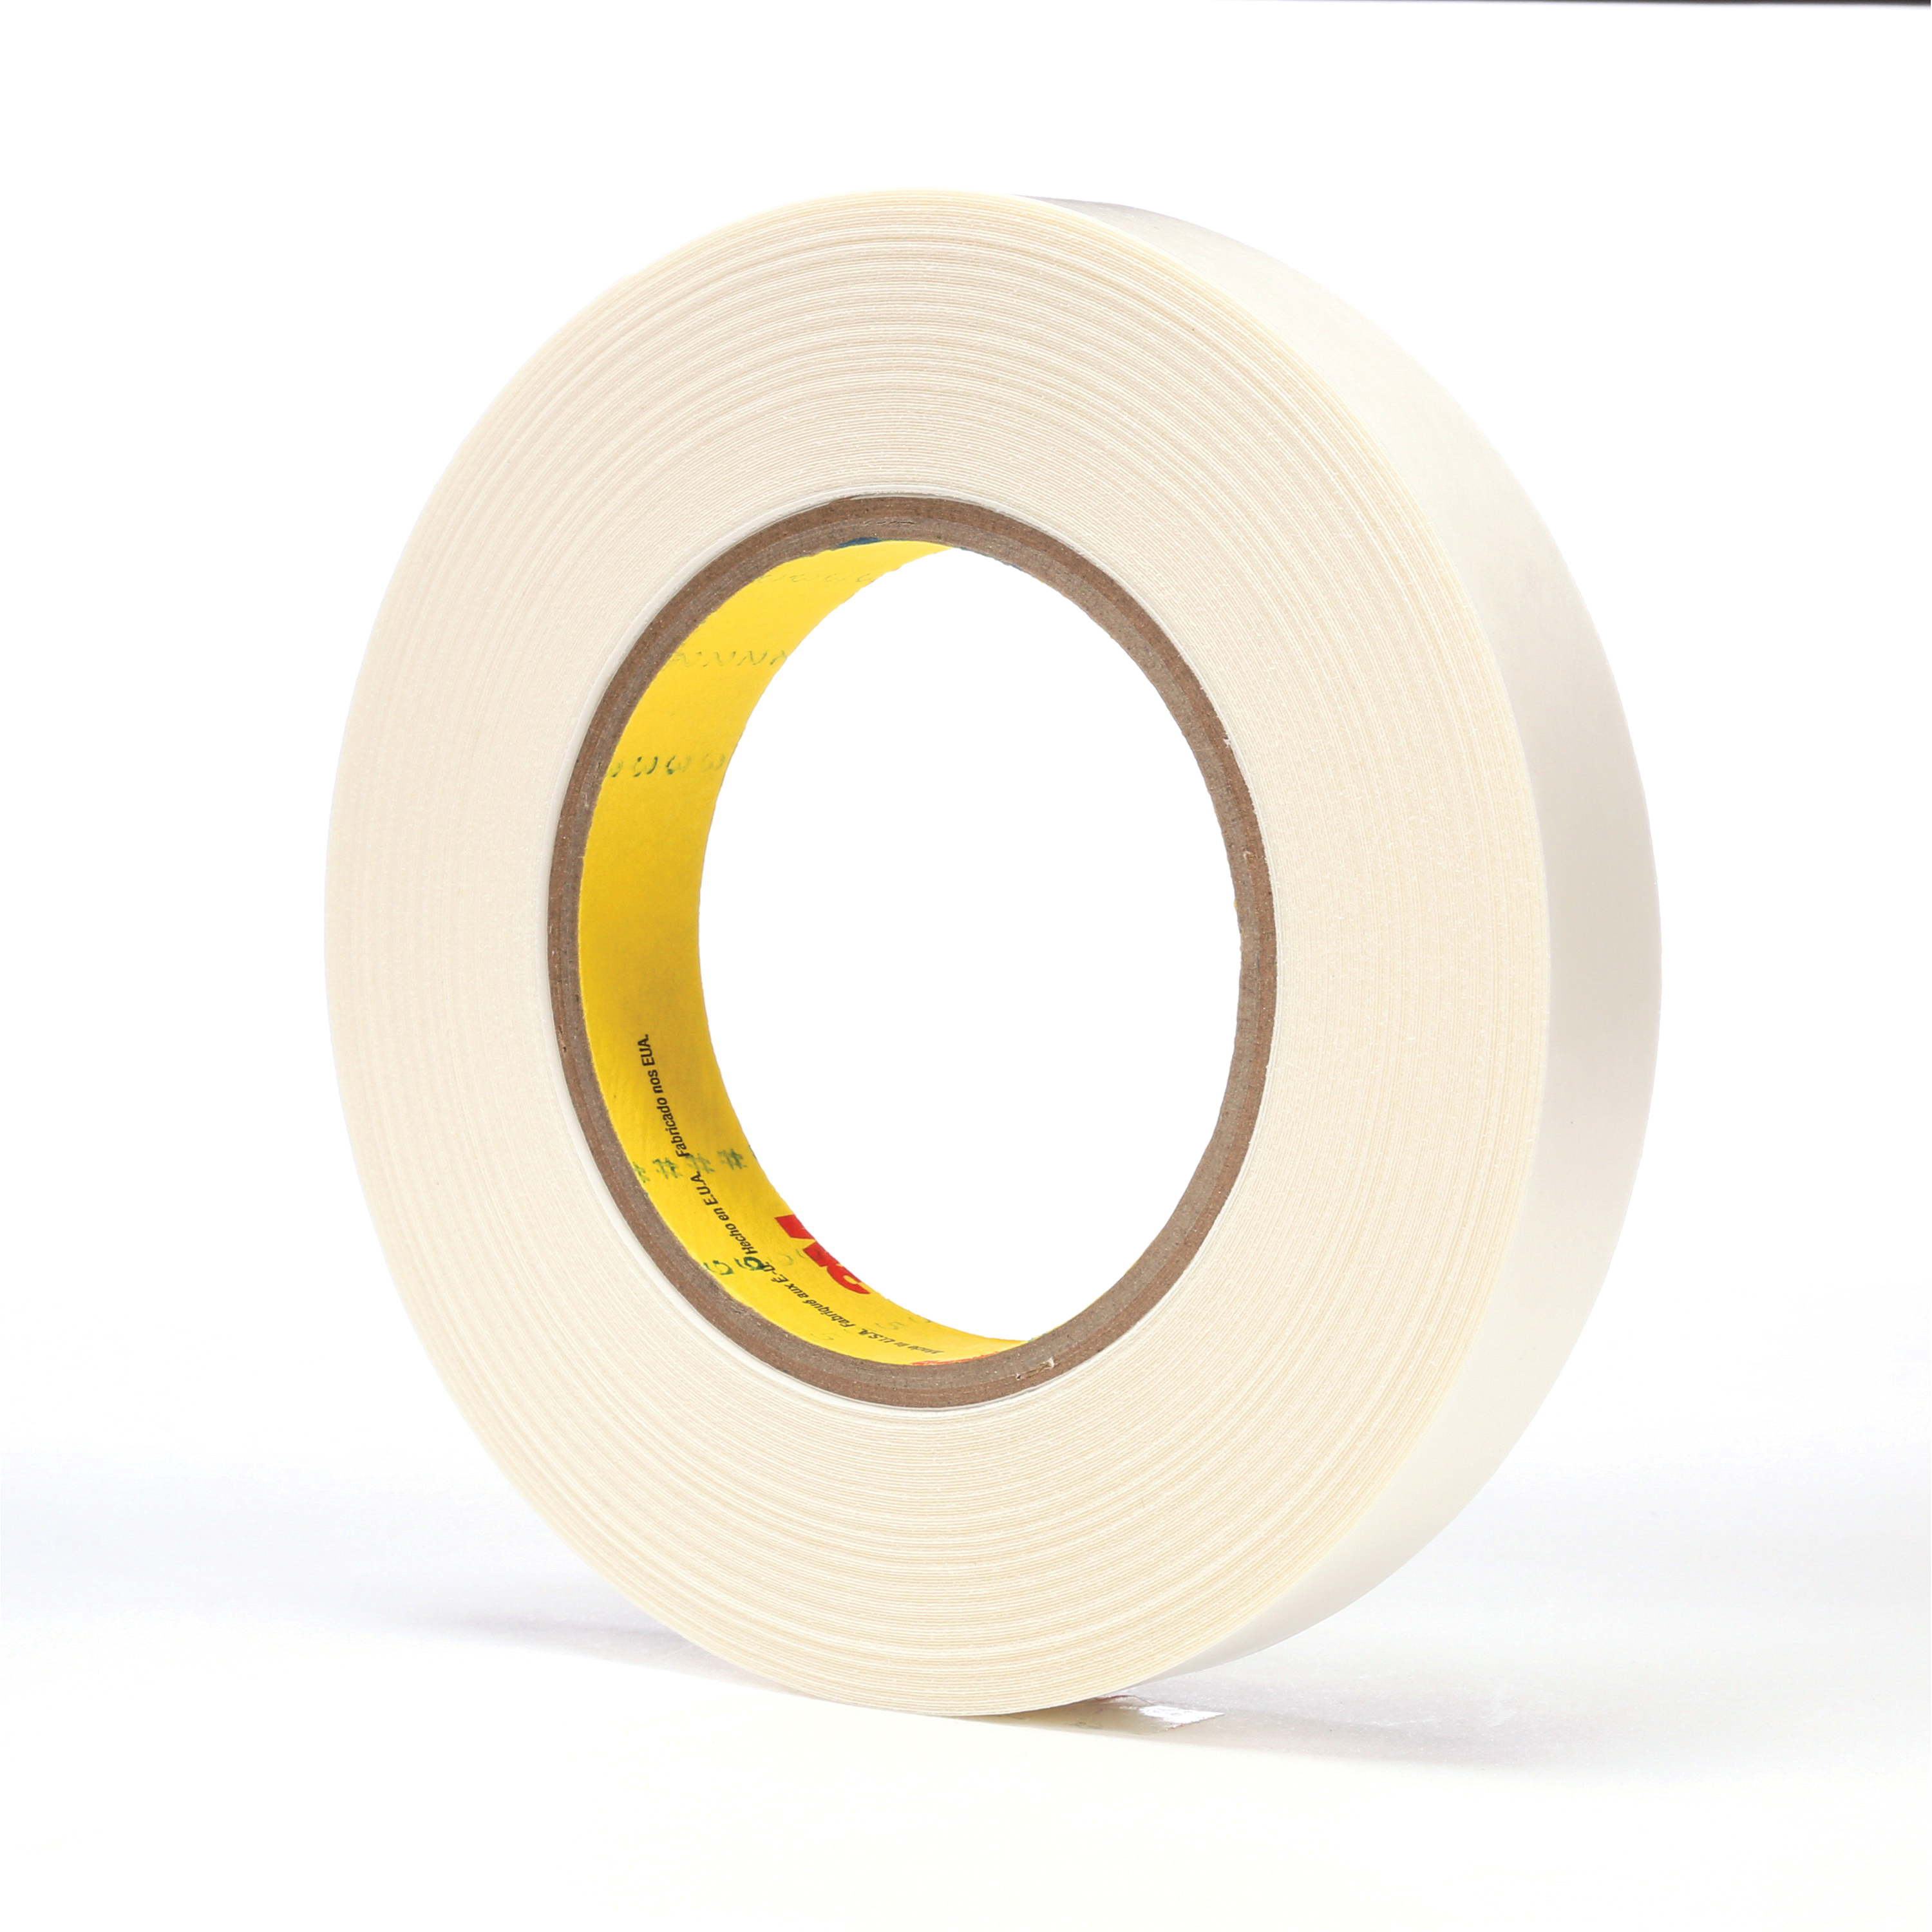 3M™ 021200-65872 Double Coated Tape, 36 yd L x 3/4 in W, 9 mil THK, Synthetic Rubber Adhesive, Polyethylene Backing, White